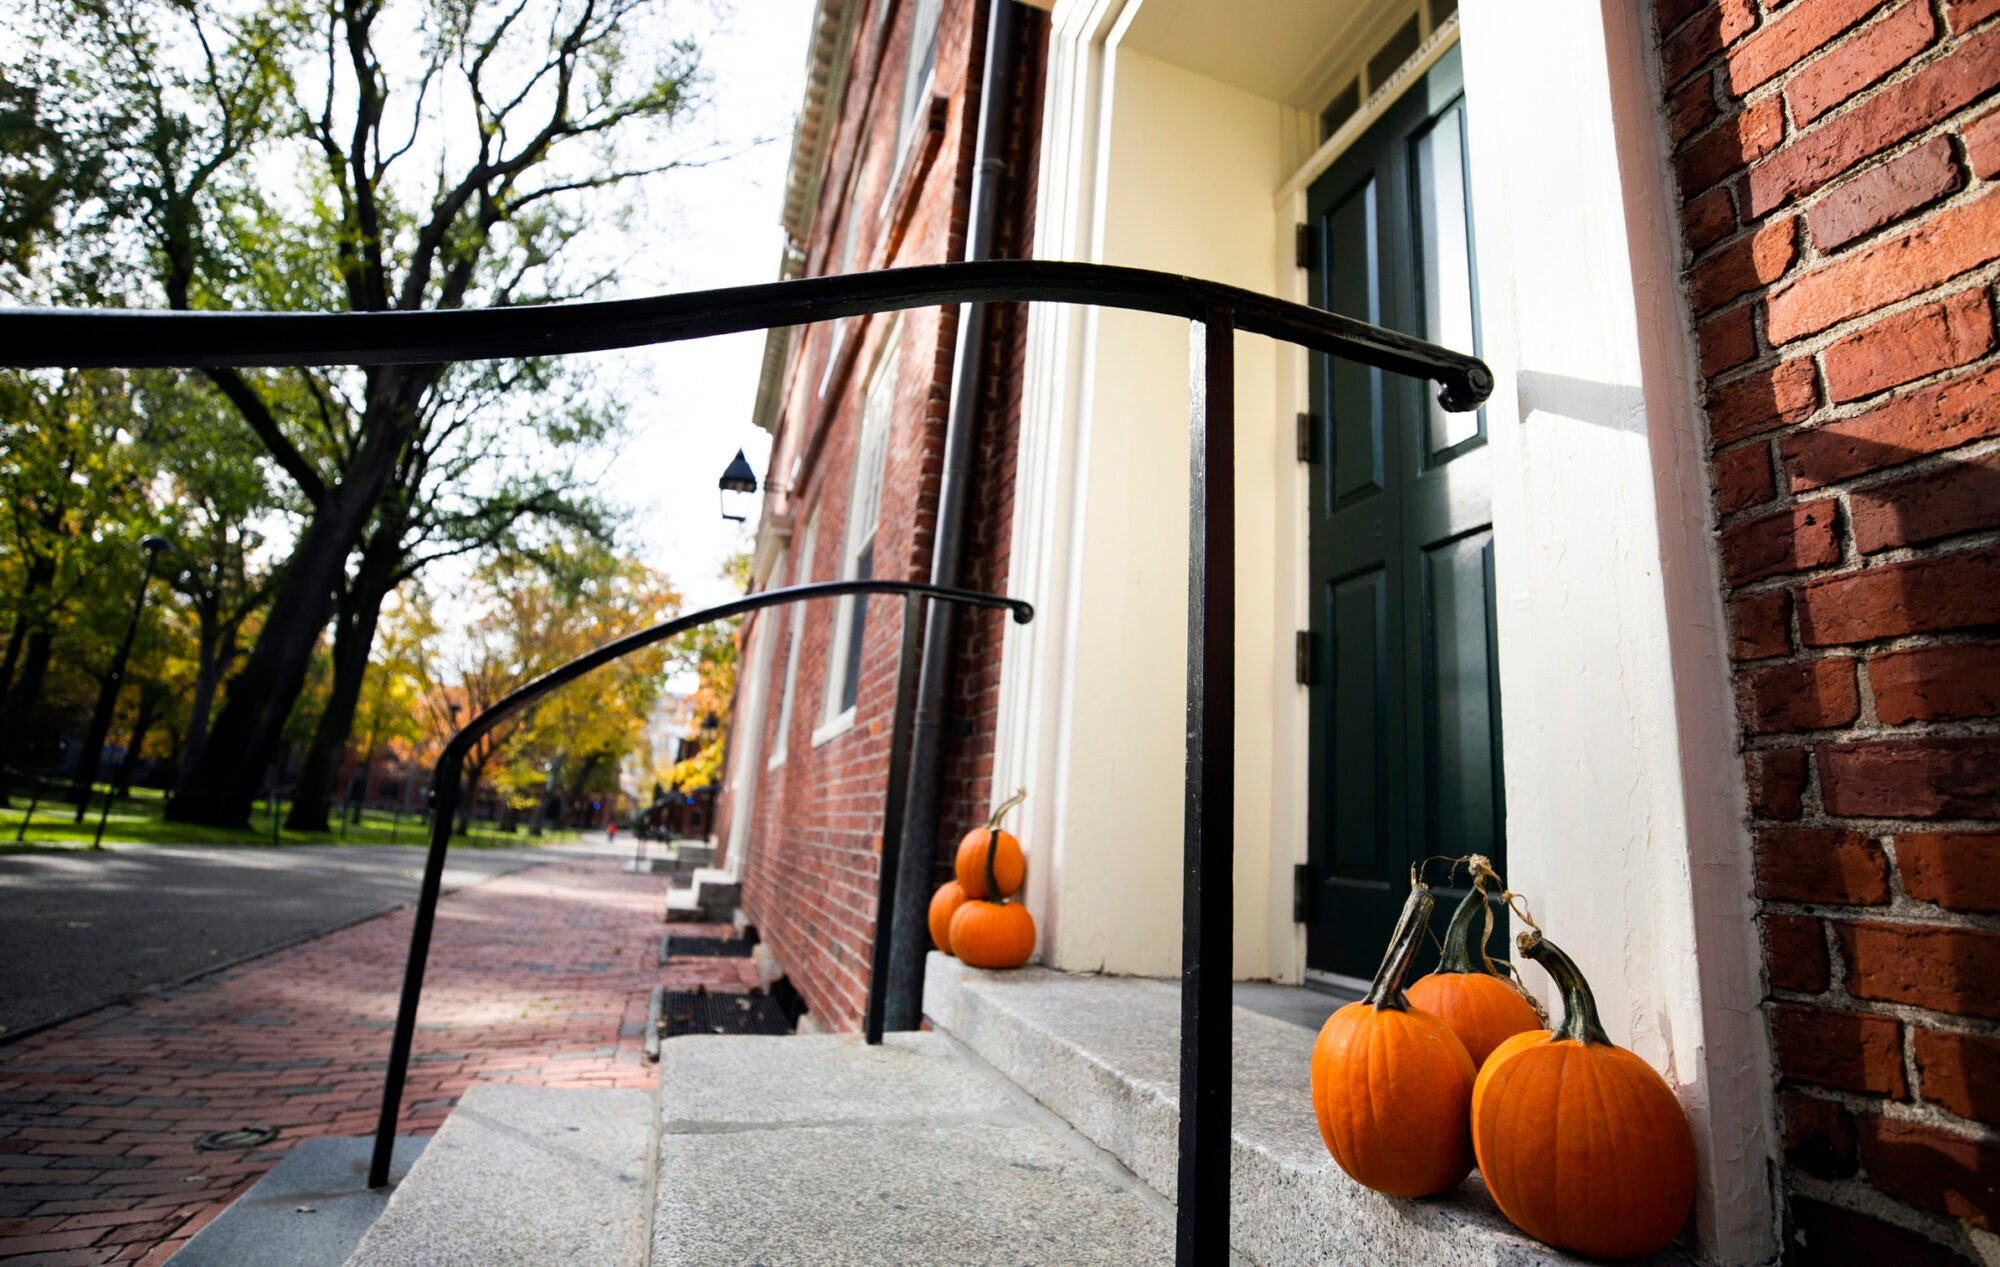 Three pumpkins on each side of a door in a brick building